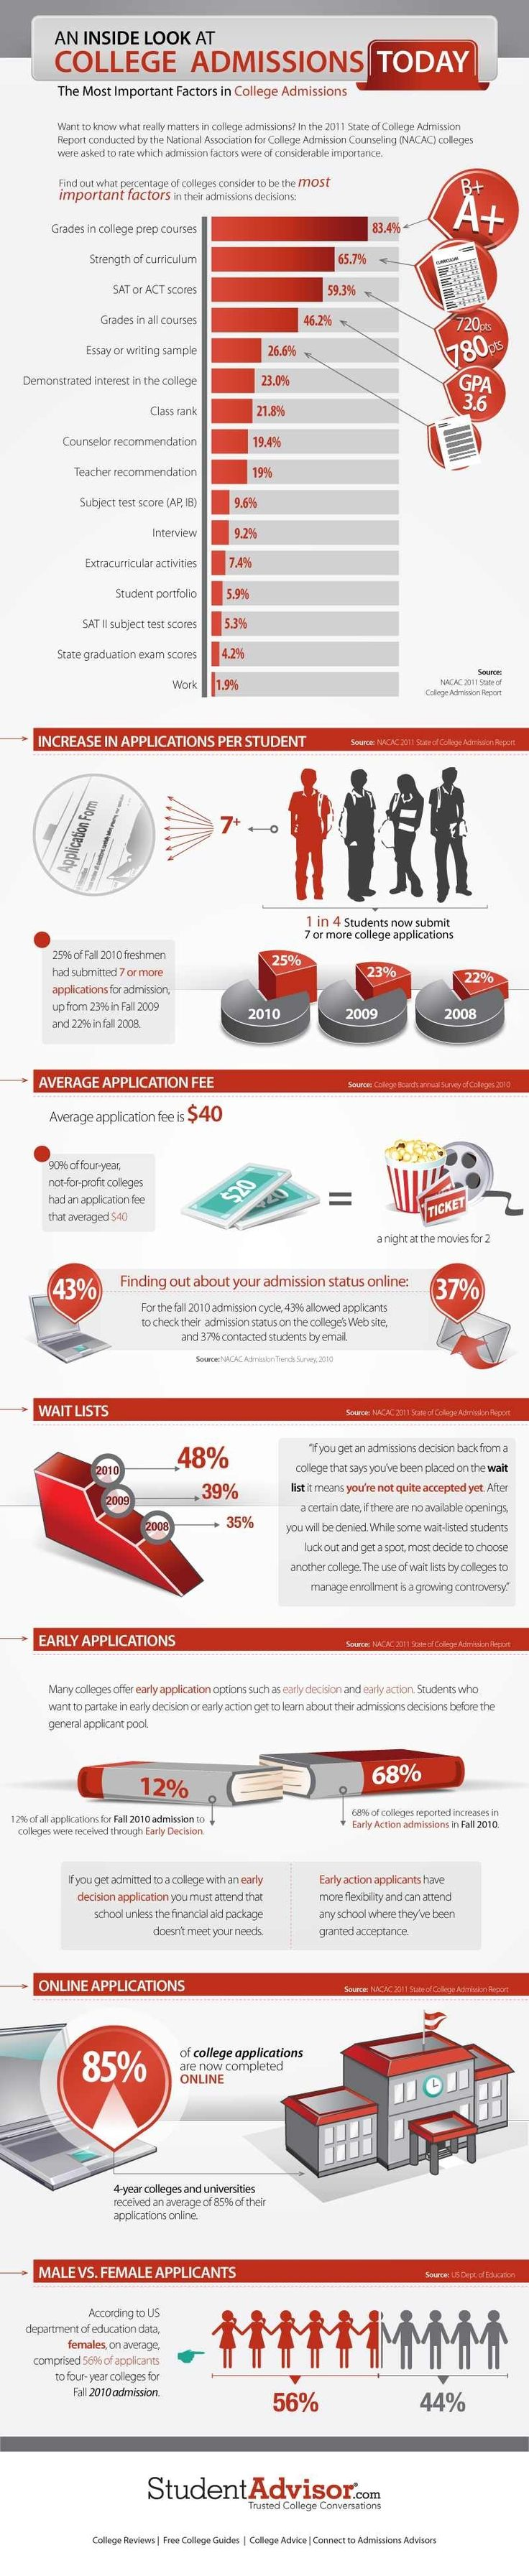 College Admissions Statistics 2011: An Inside Look